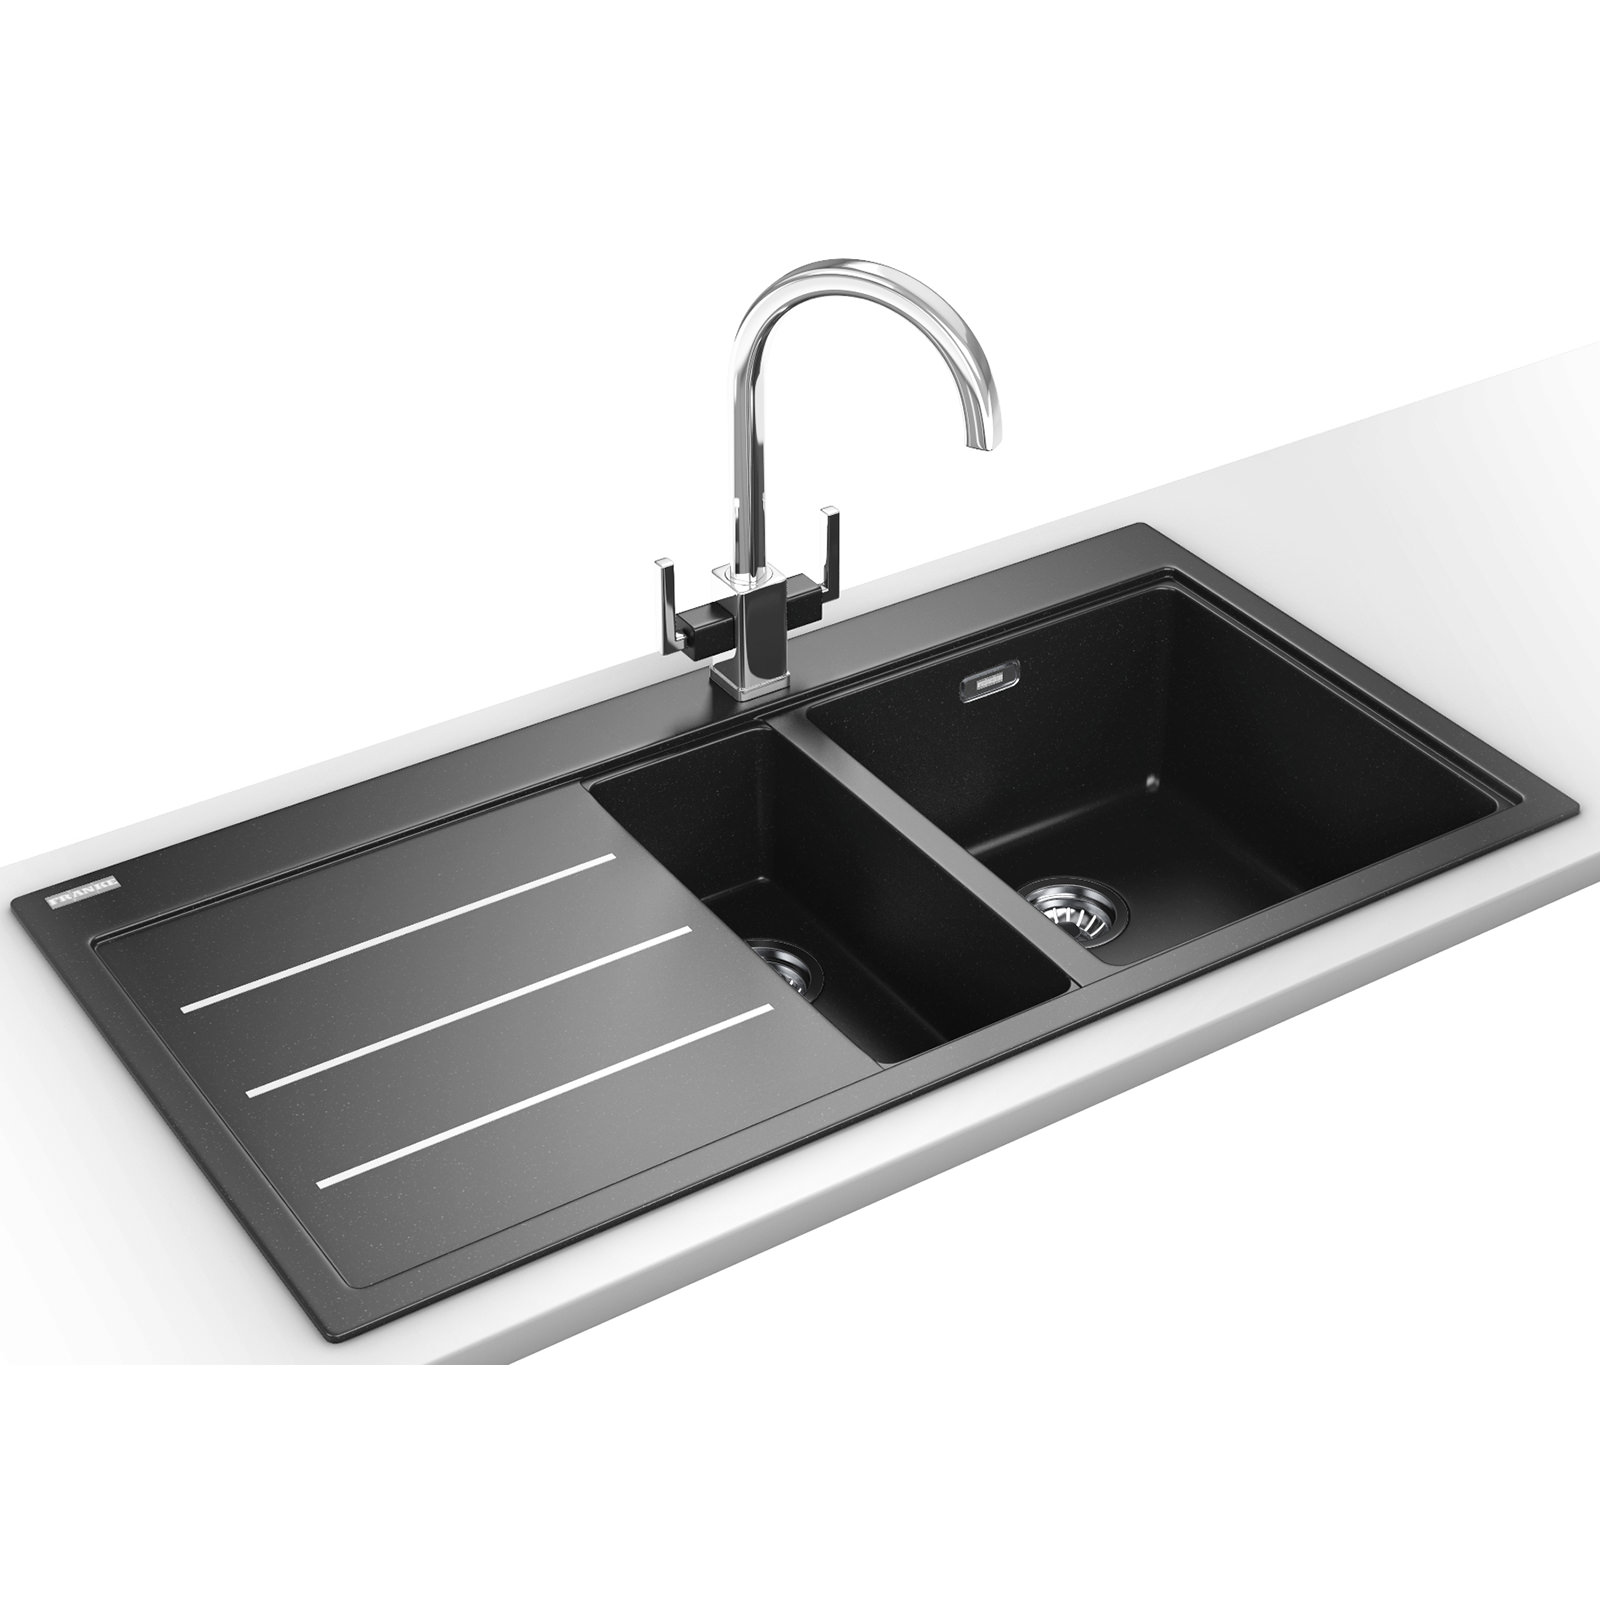 Franke Sinks And Taps : Franke Mythos Fusion DP MTF 651-100 Fragranite Onyx Sink And Tap 114 ...